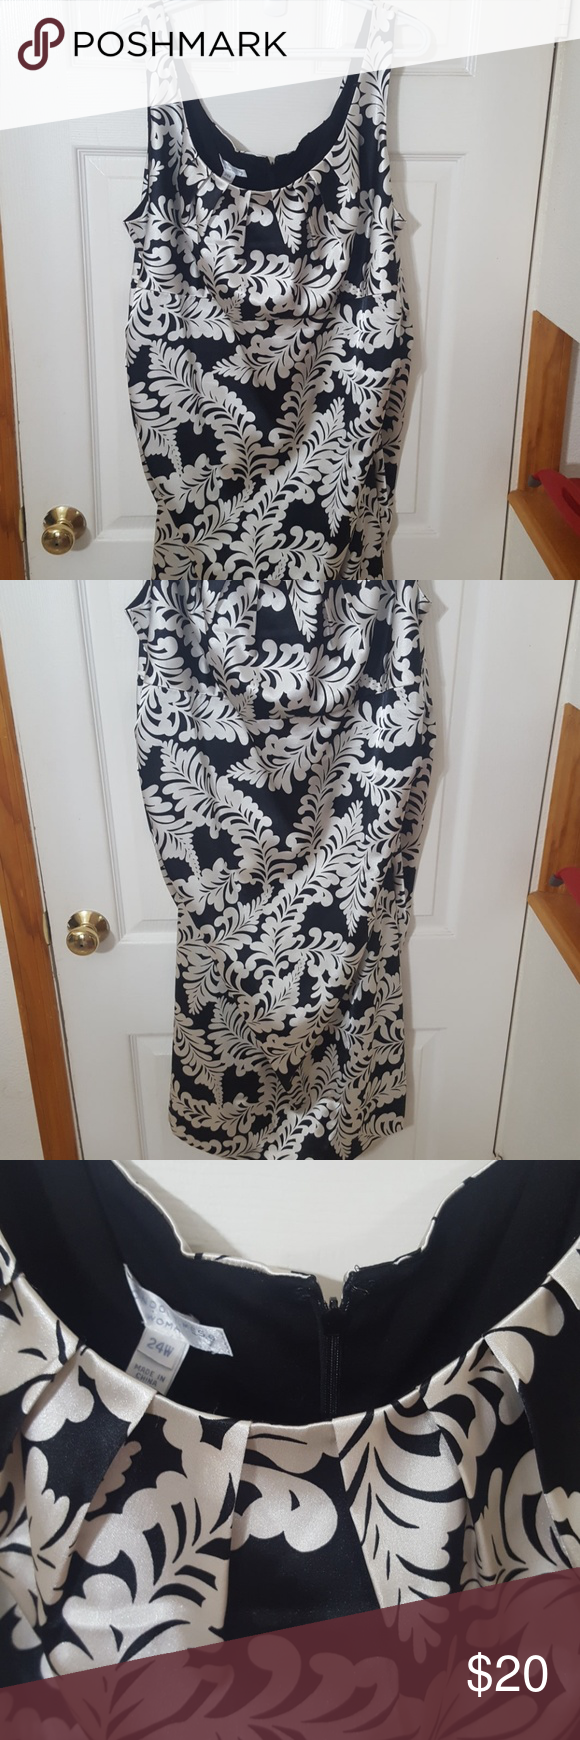 London Times Dress Black And Cream Dress Black Lining Excellent Condition London Times Dresses Midi Clothes Design London Times Dress Dresses [ 1740 x 580 Pixel ]